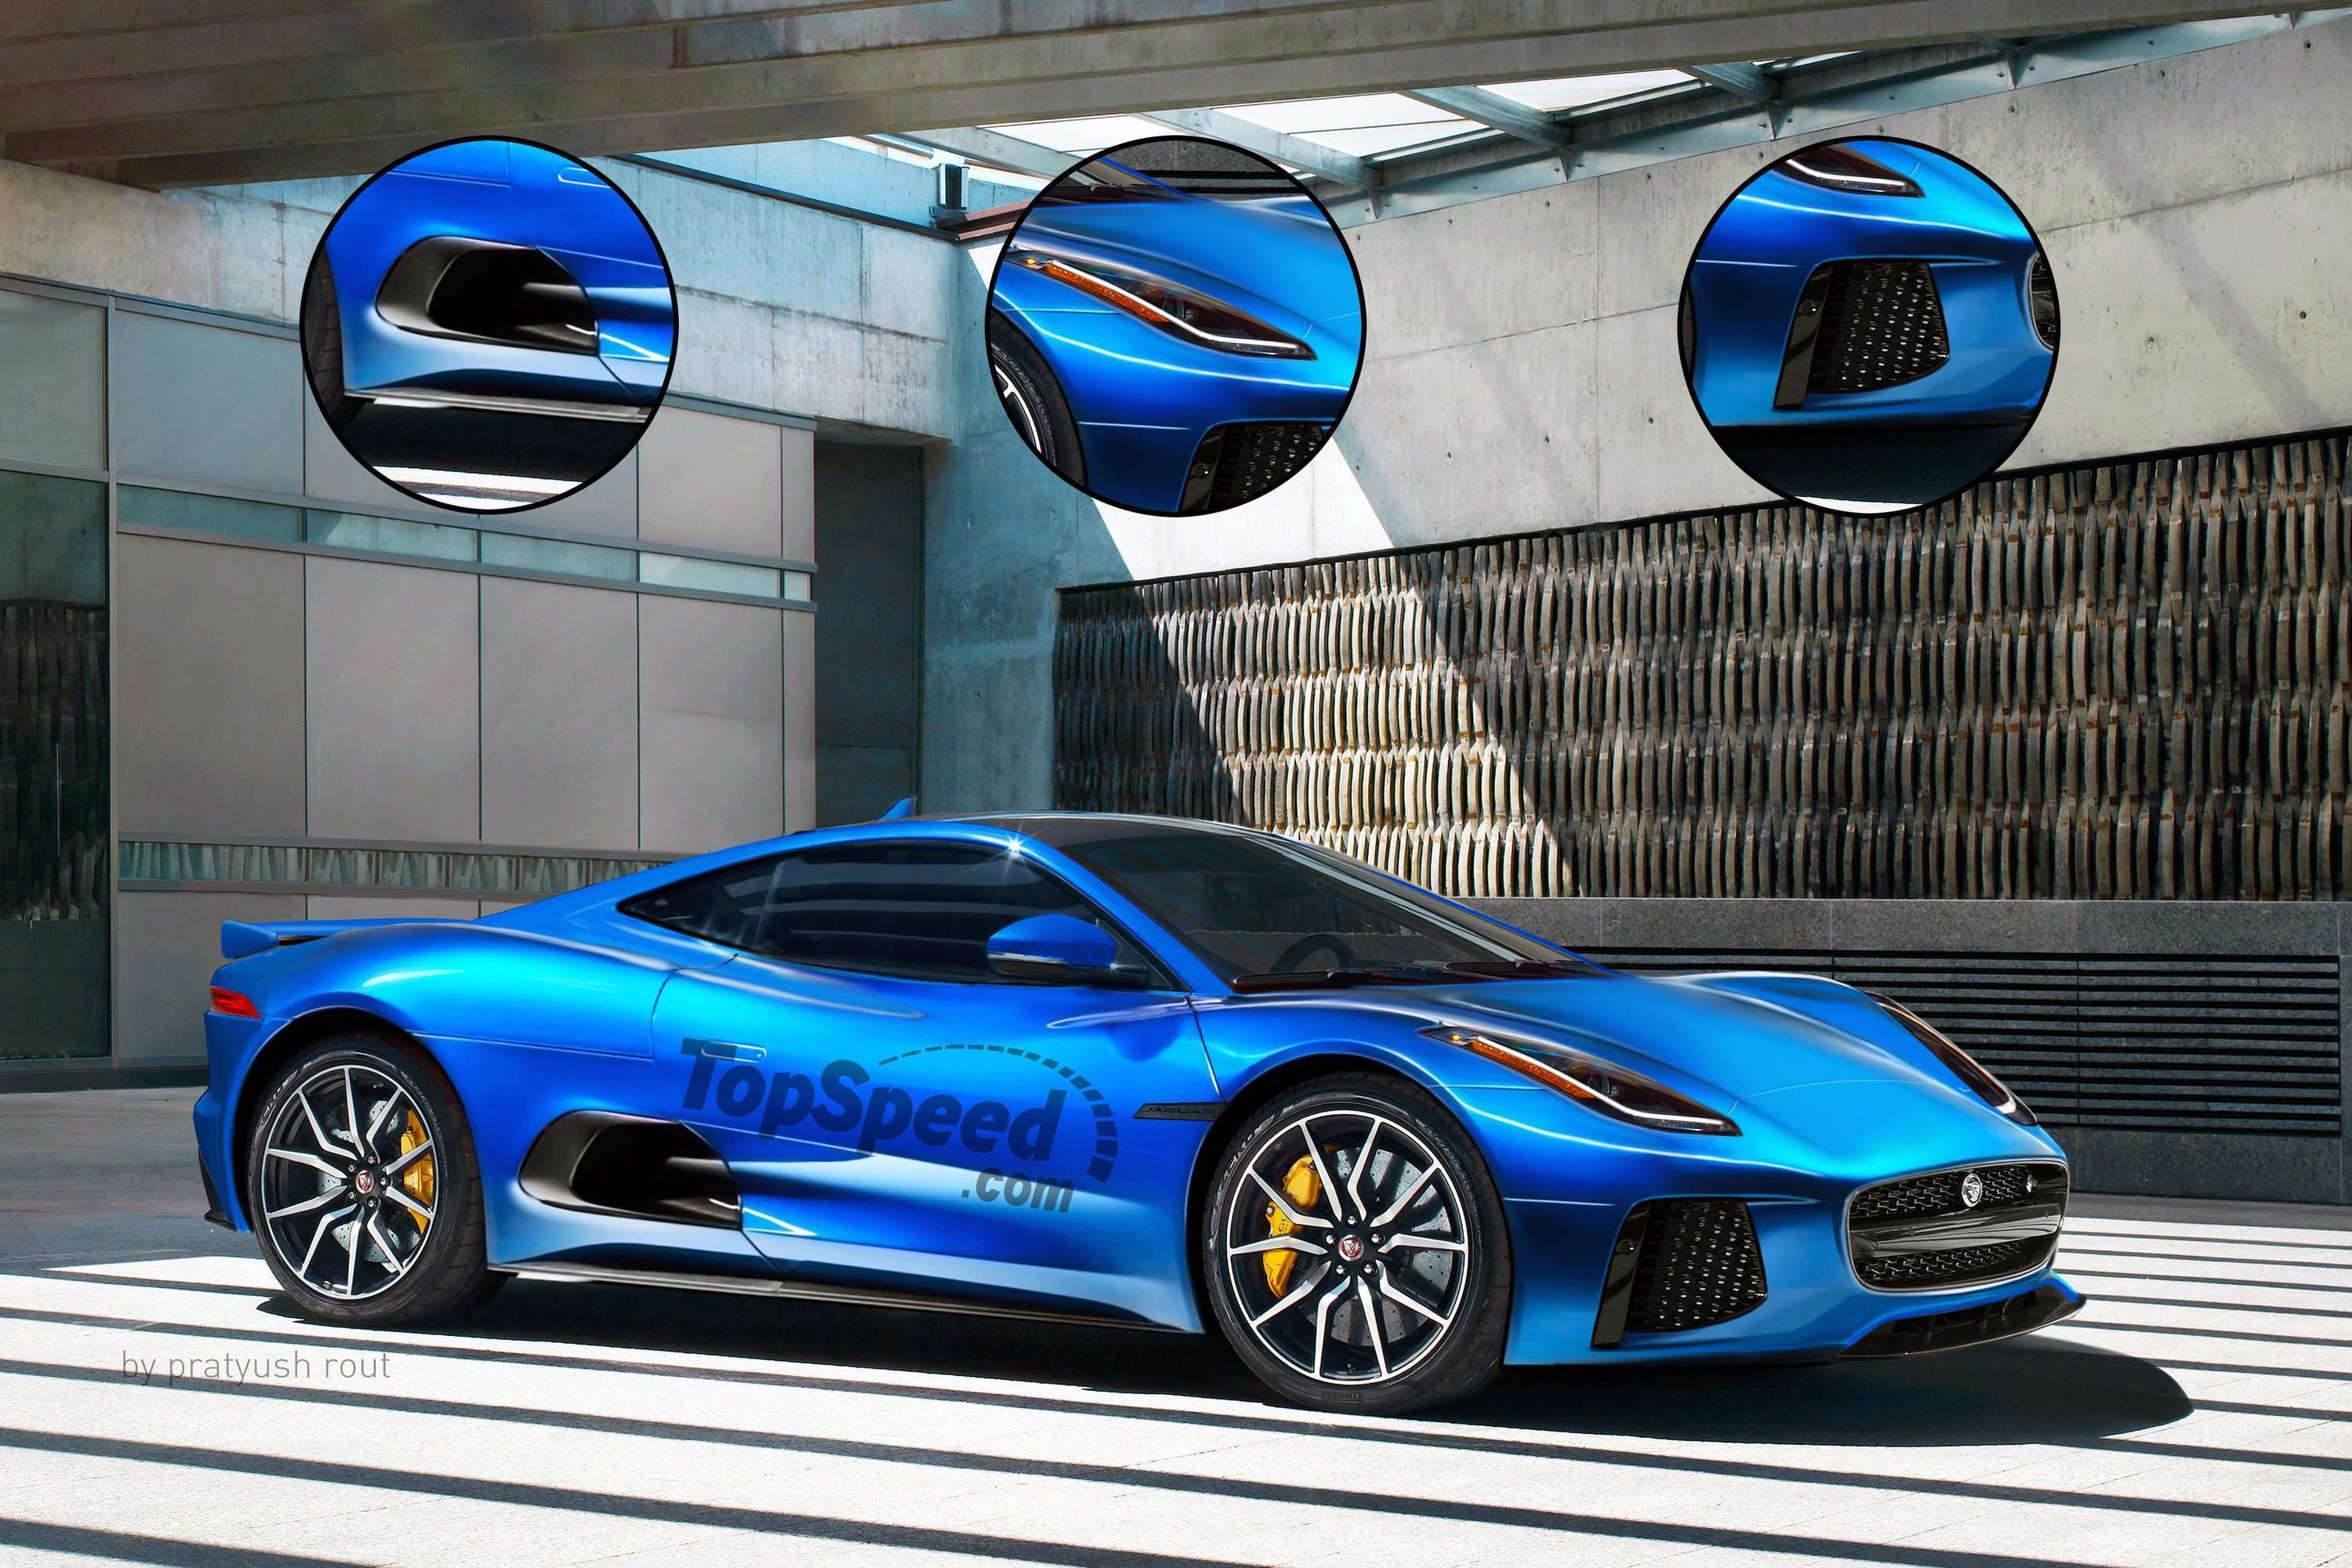 56 Best Review Jaguar F Type 2020 New Concept Exterior and Interior by Jaguar F Type 2020 New Concept